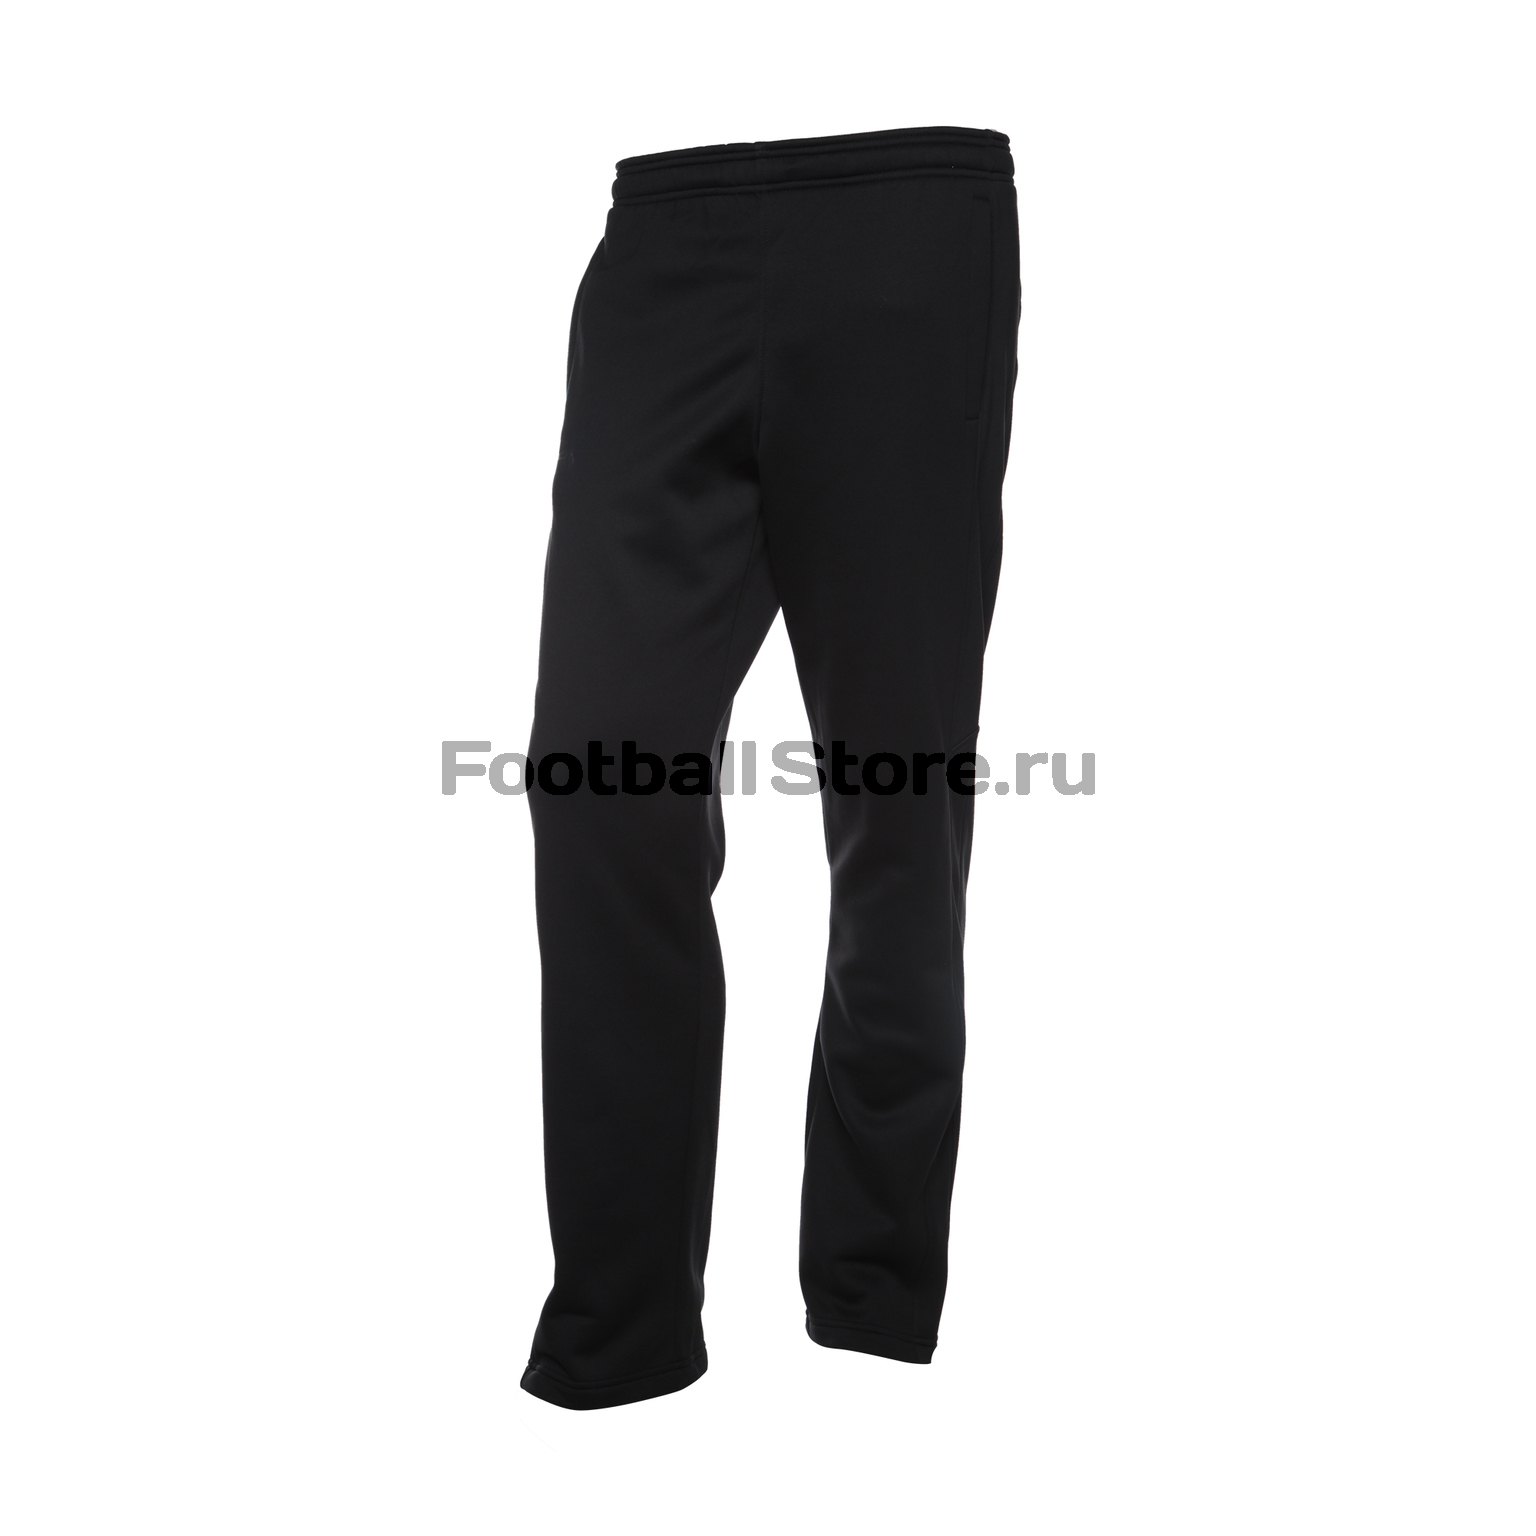 Брюки тренировочные Under Armour Storm 1280734-001 available from 10 11 under armour comprehensive training trousers 1289319 001